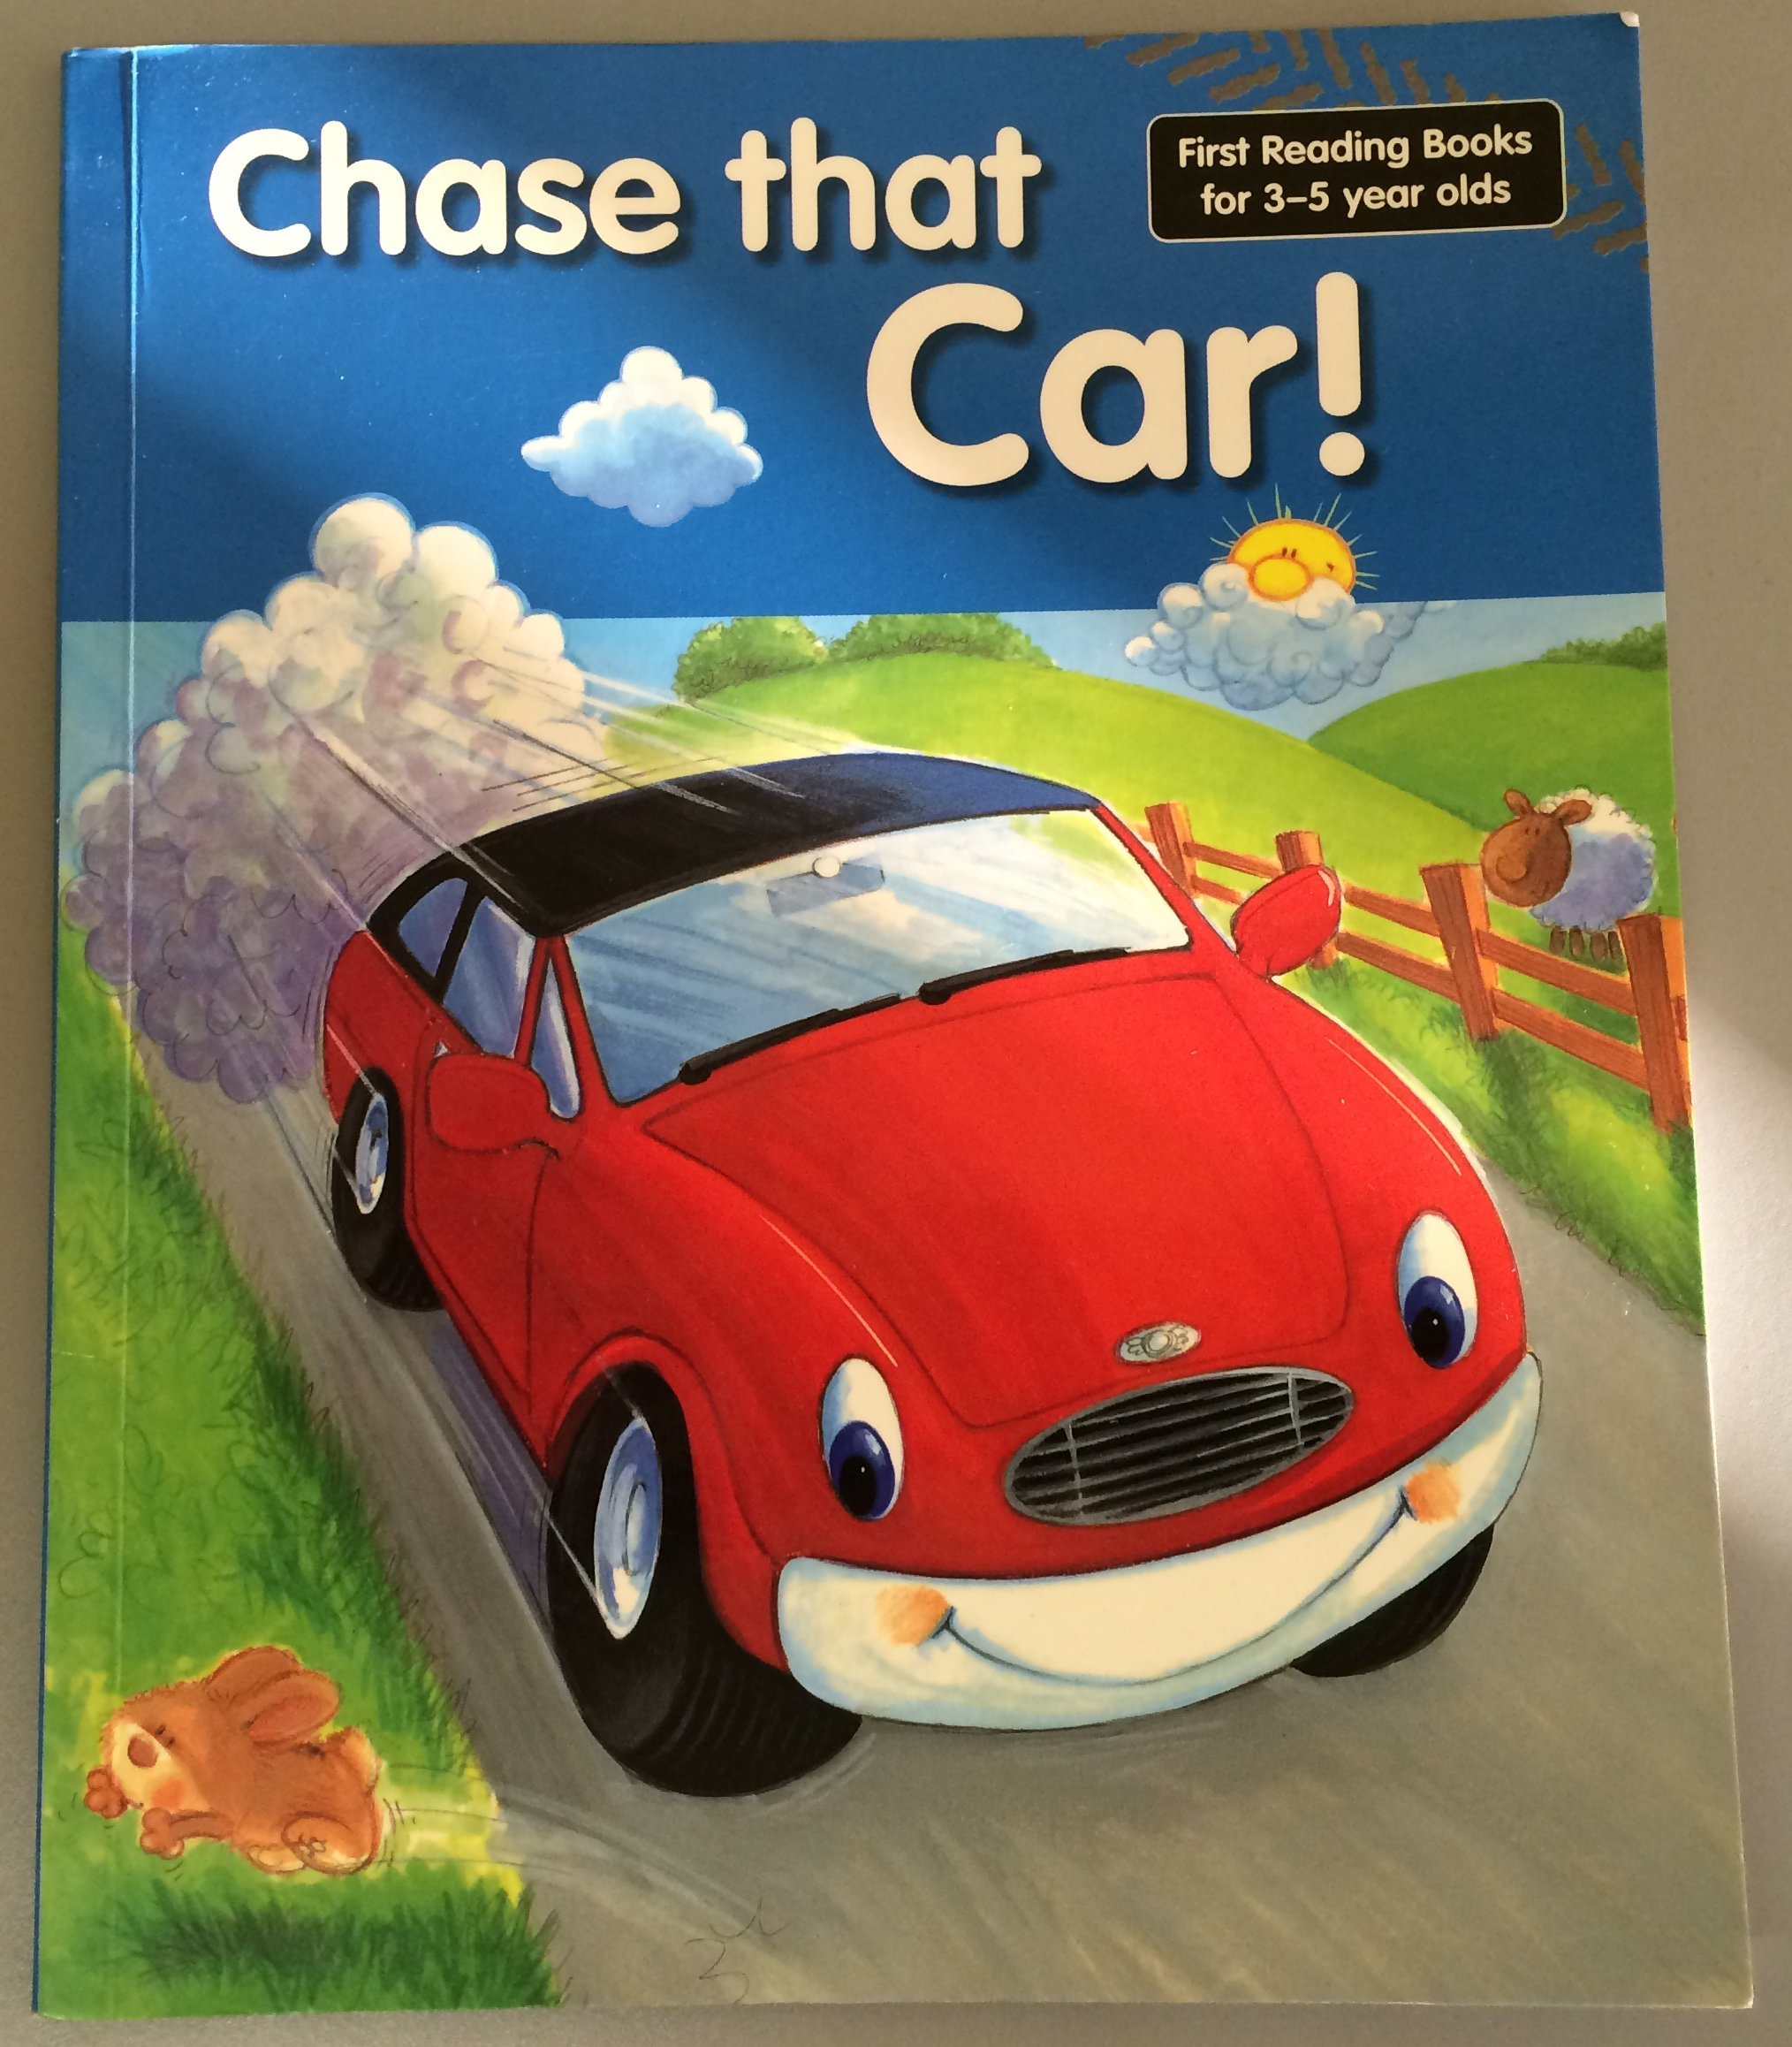 Chase that Car! (First Reading Books for 3-5 Year Olds) PDF